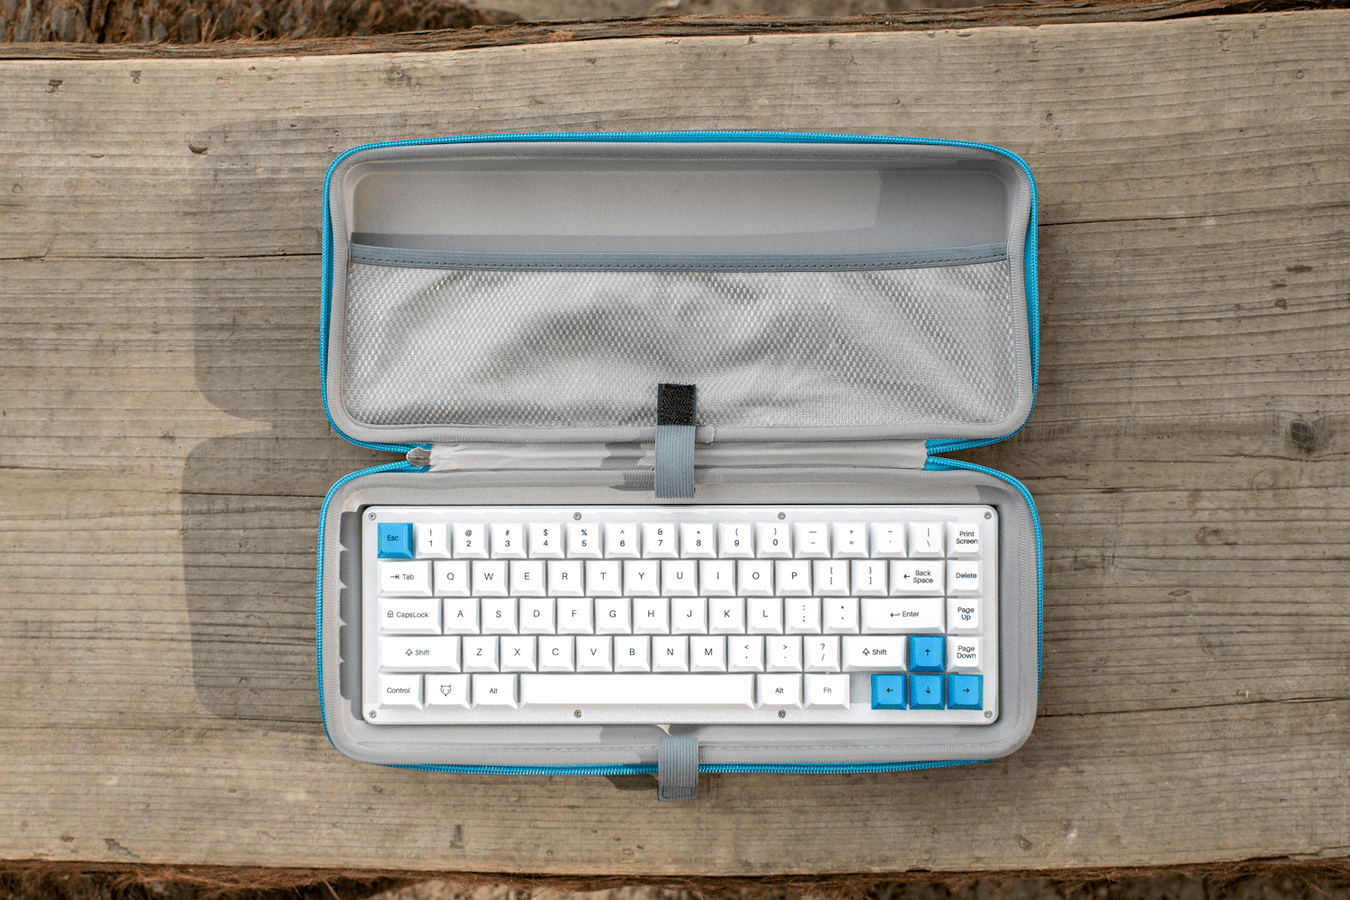 WhiteFox Mechanical Keyboard in a Carrying Case